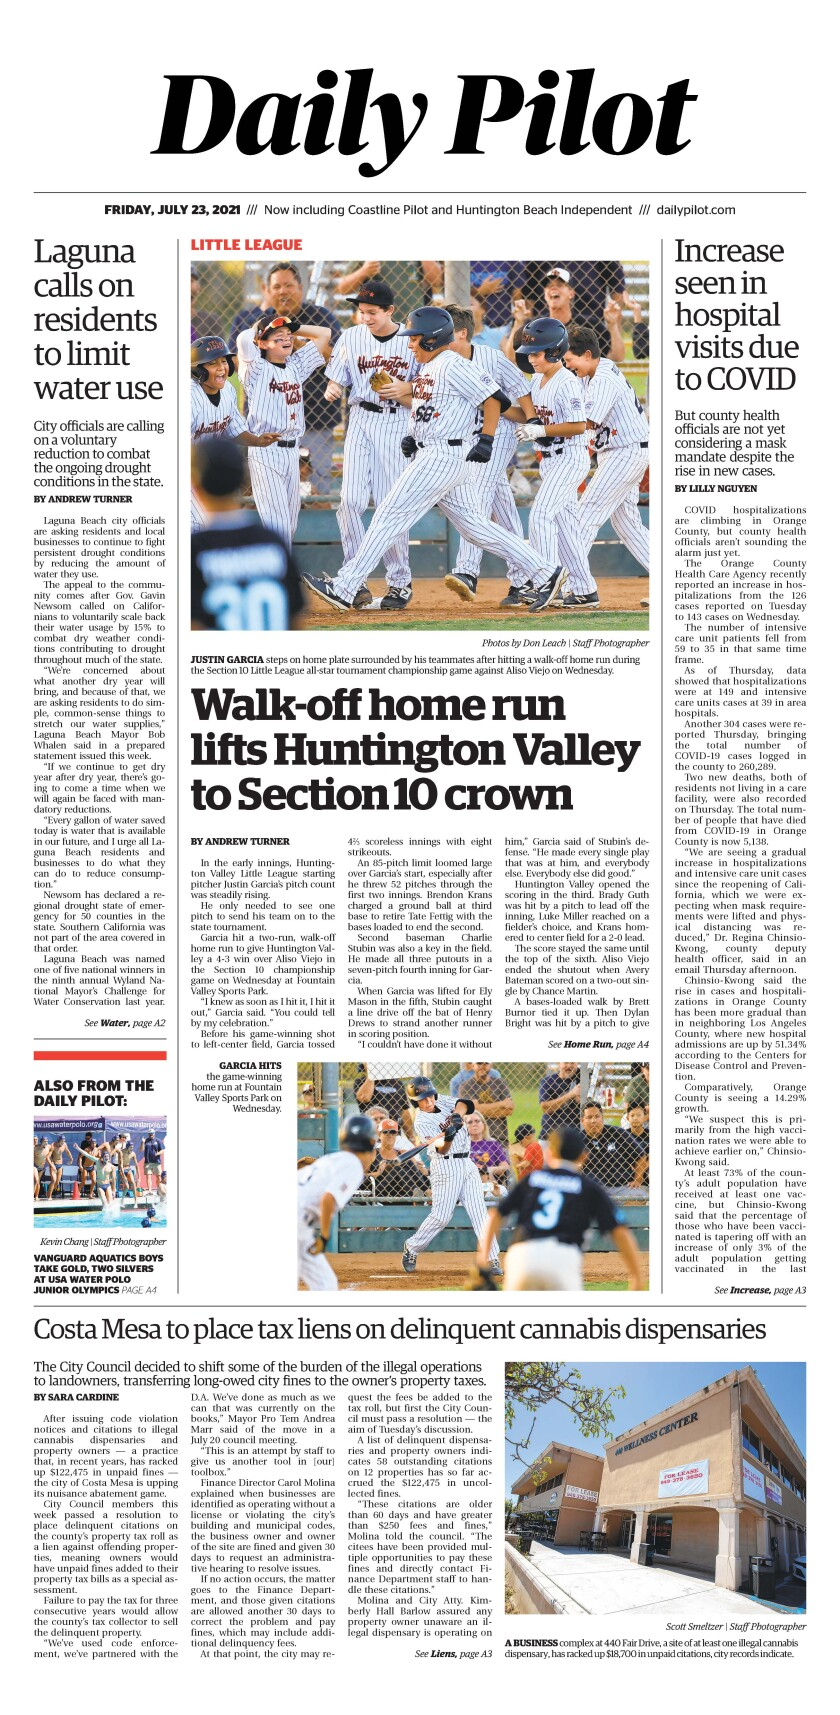 Front page of Daily Pilot e-newspaper for Friday, July 23, 2021.